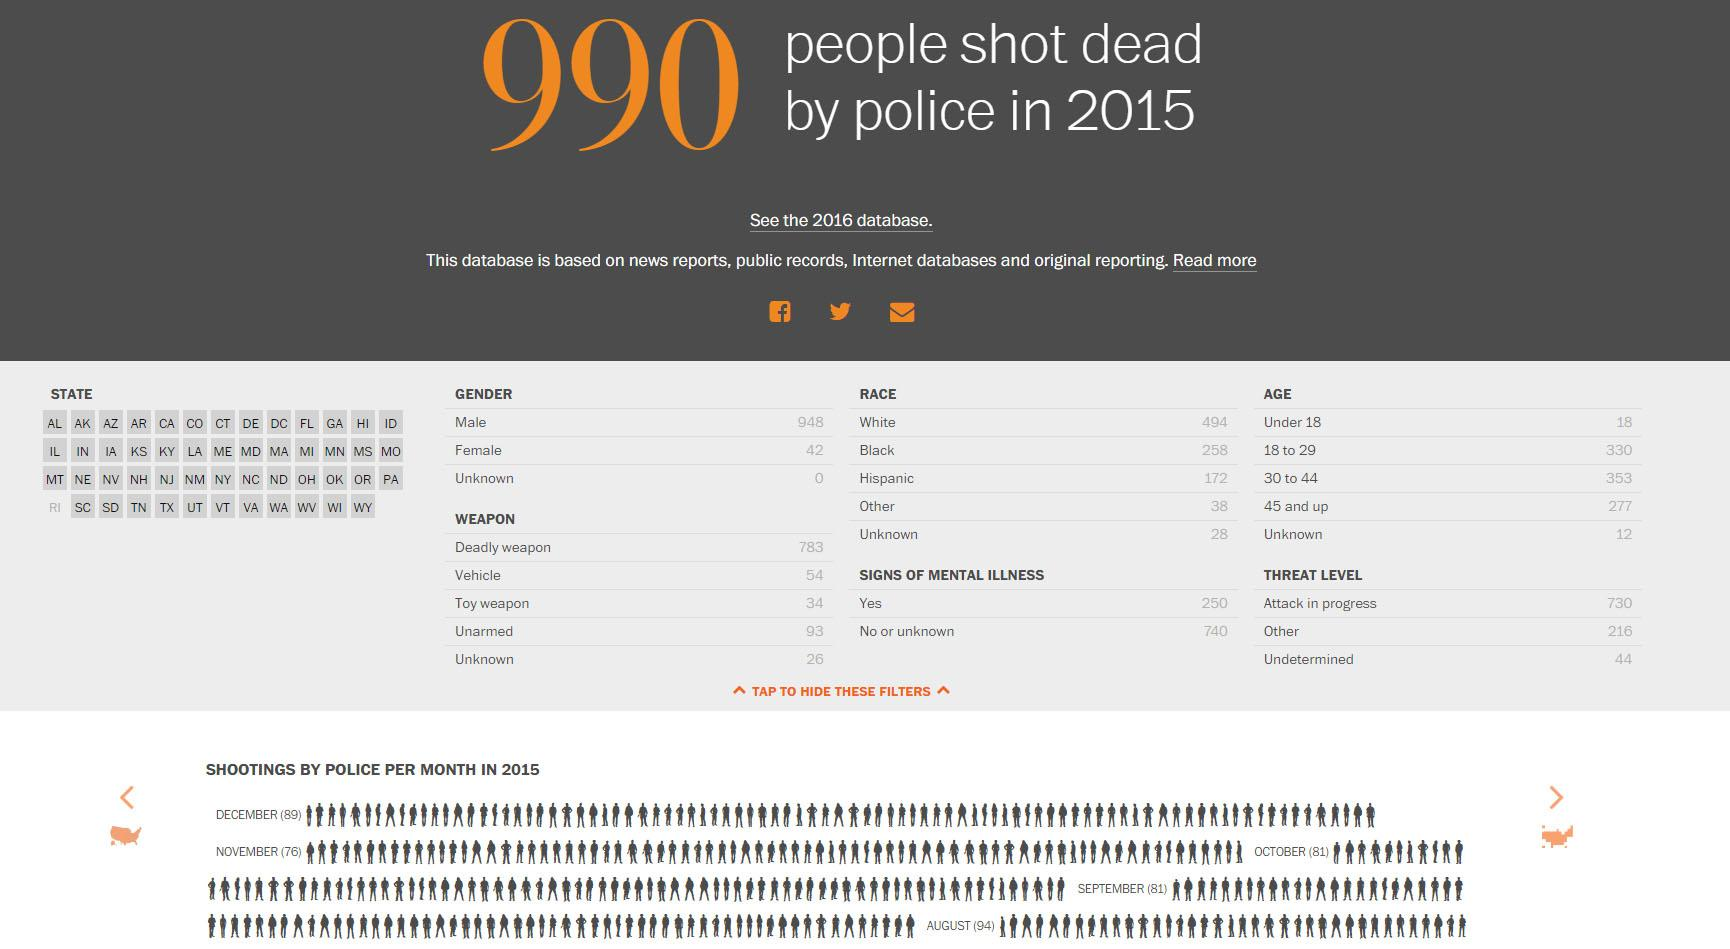 The database that Lowery and The Washington Post created to display the number of people shot by police.